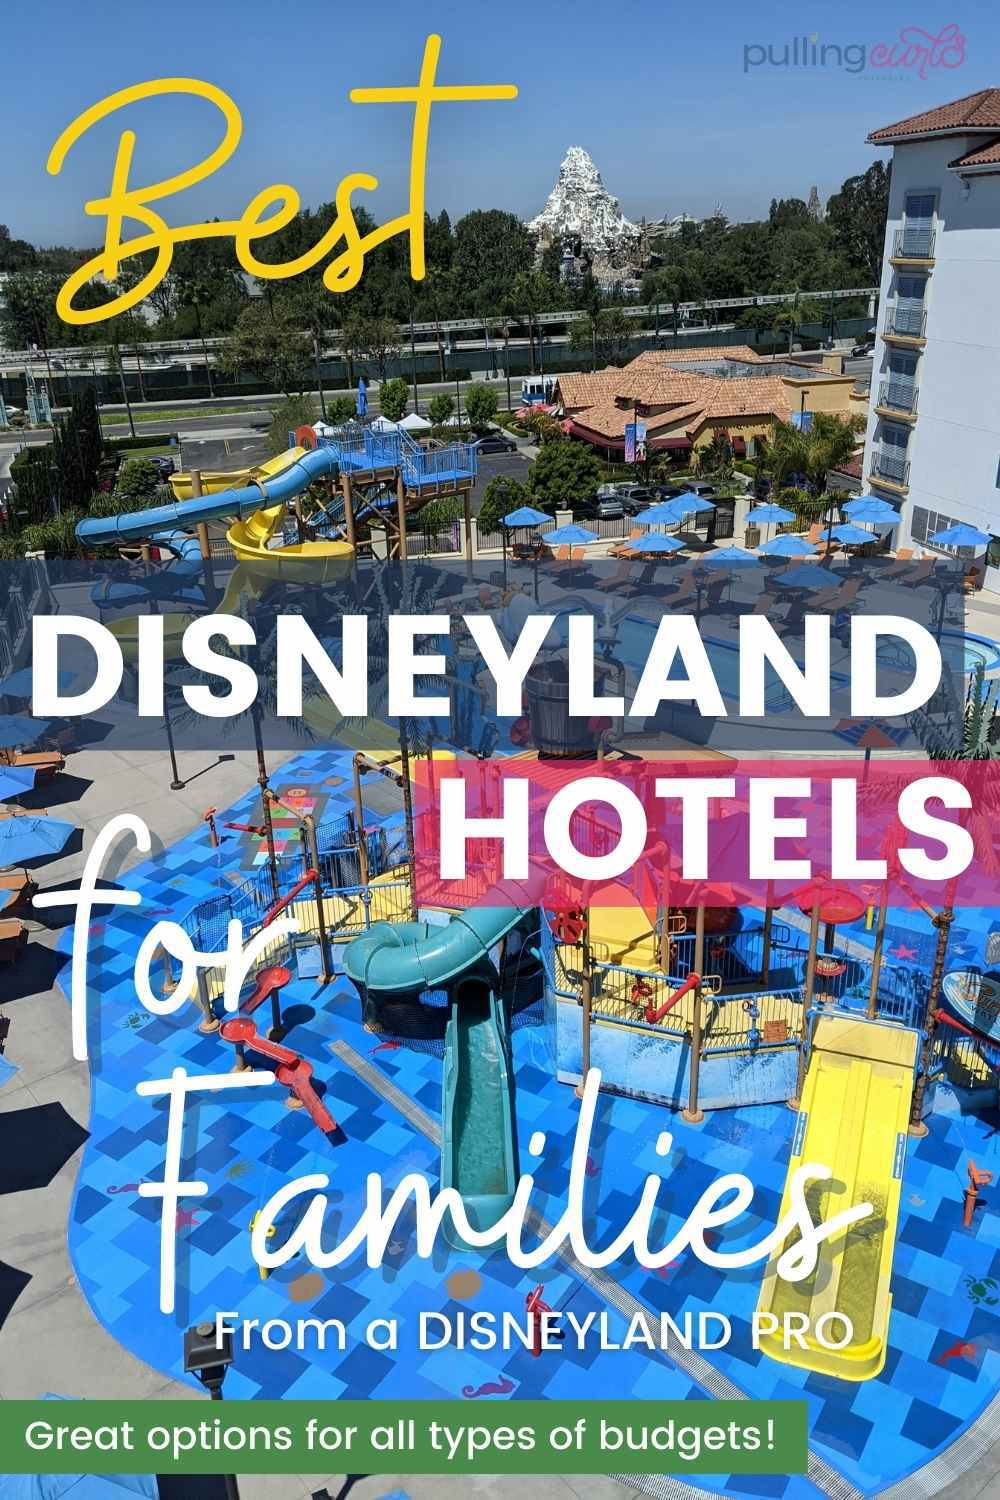 Looking for a Disneyland hotel that has everything you need -- we've got free breakfast, bunk beds, awesome outdoor pools. These best hotels are an awesome pick for your Disneyland vacation! via @pullingcurls